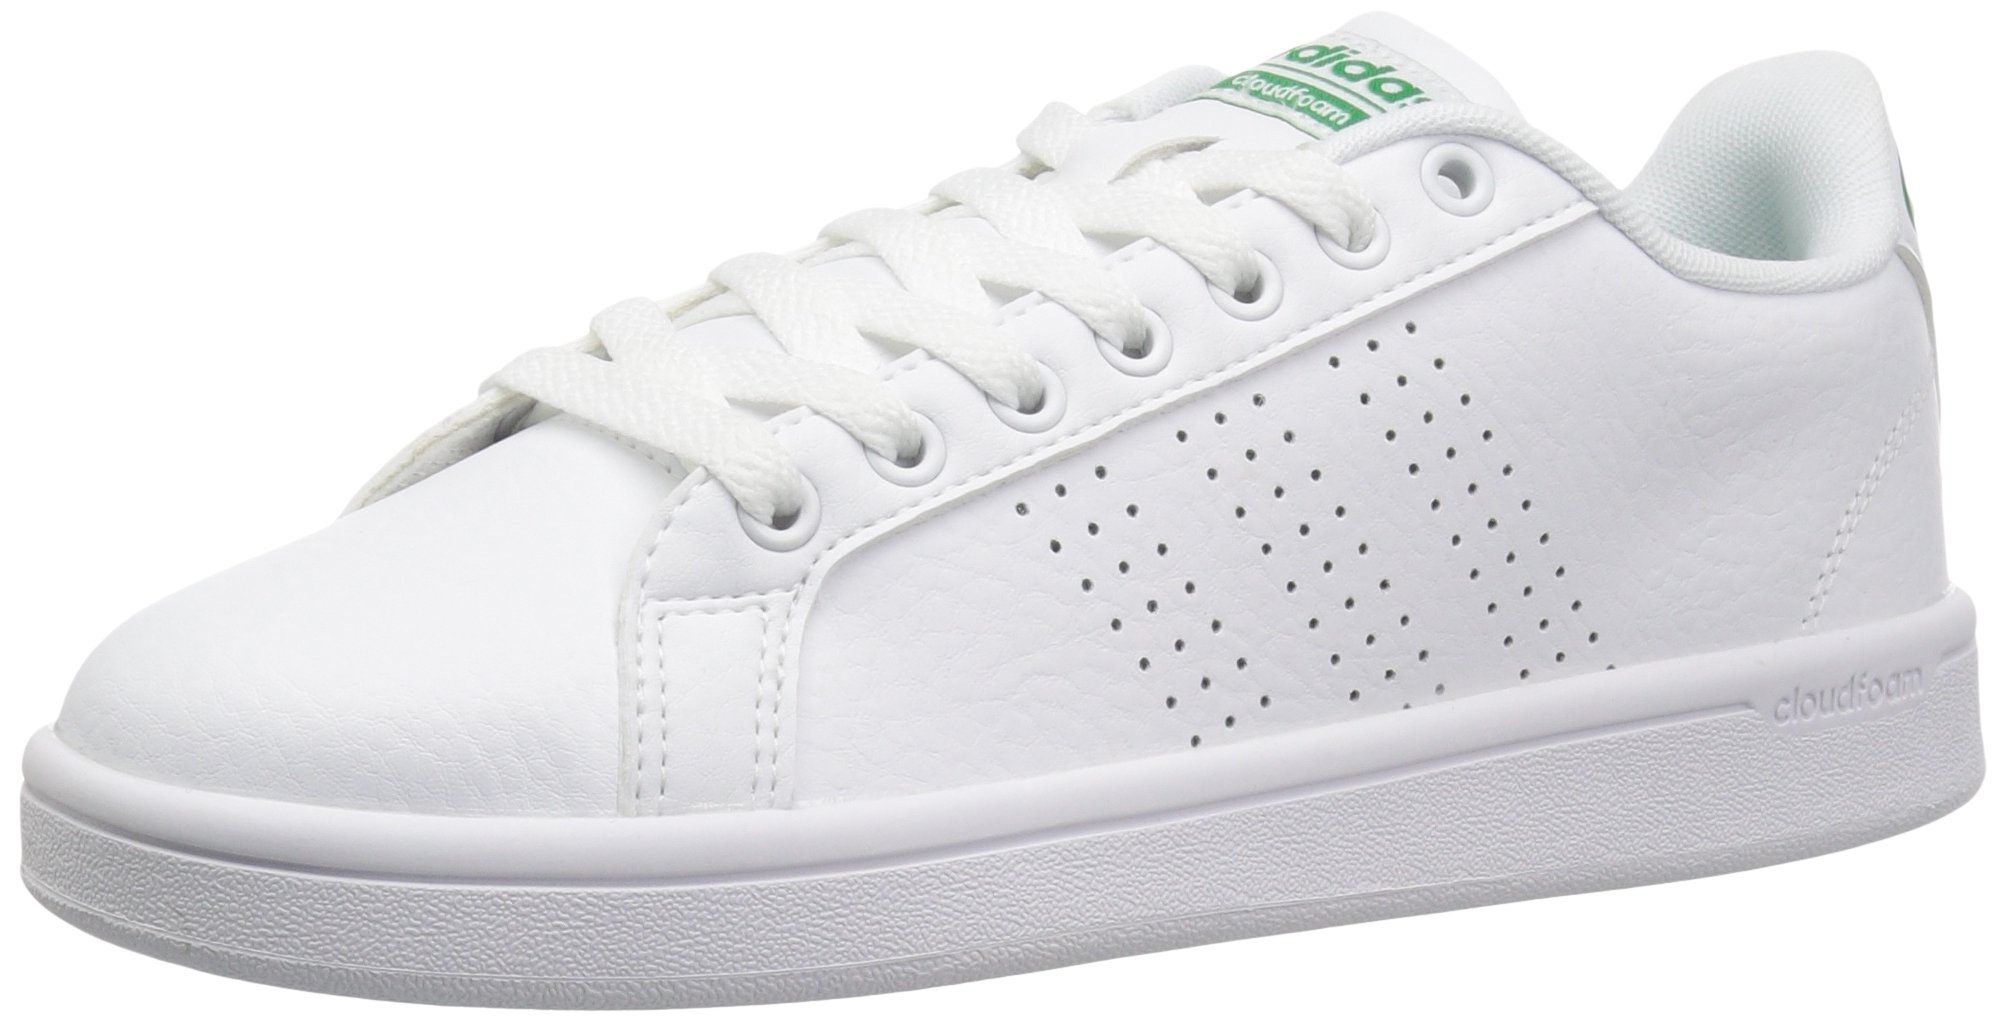 Details about ADIDAS MEN'S CLOUDFOAM ADVANTAGE CLEAN SNEAKER WHITEGREEN 10 M US